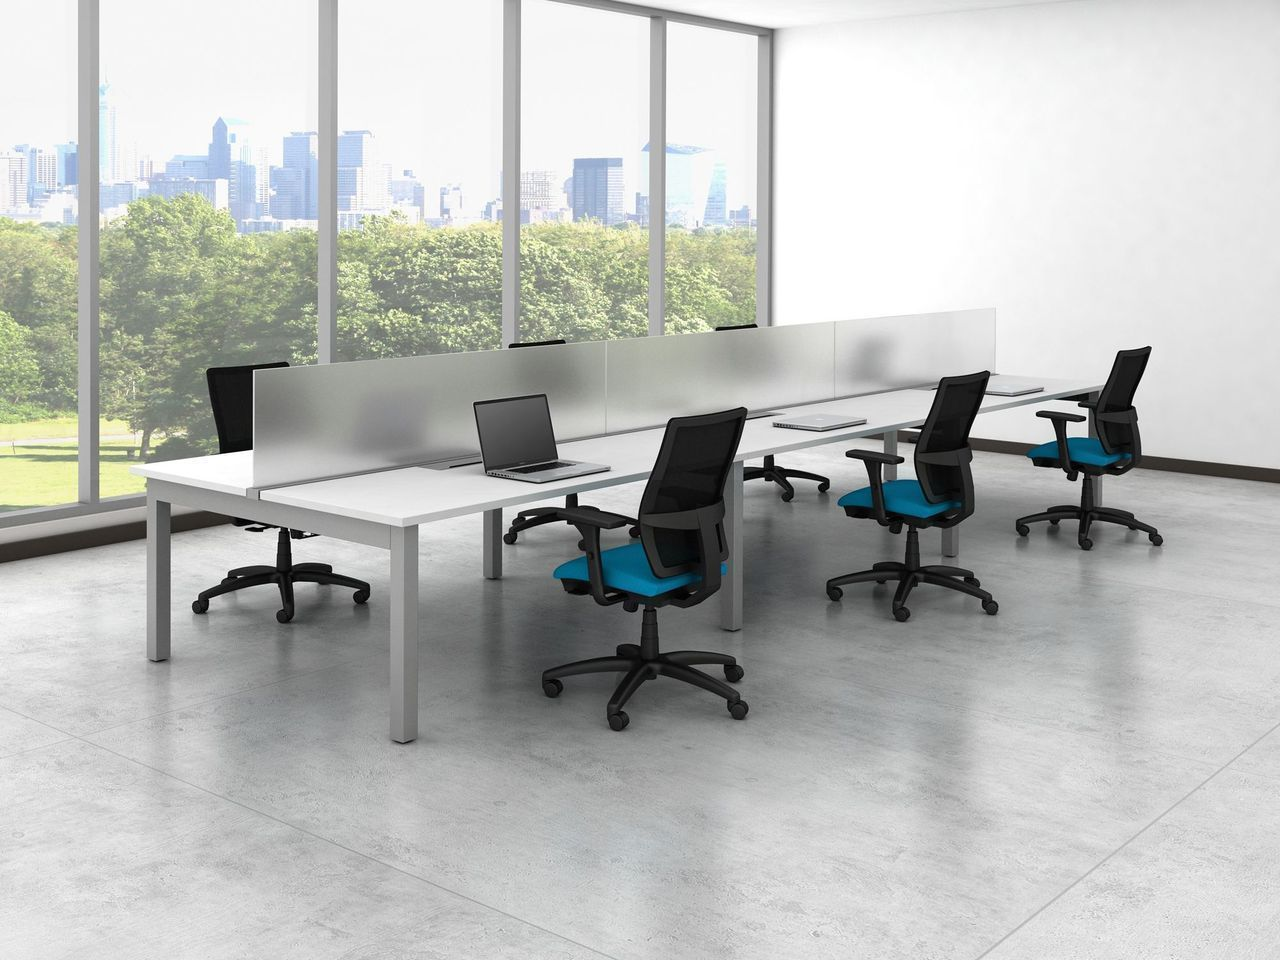 Oxygen Modern Collaborative Open Office Workstation/Desk/Table/Cubicle/Benching  | eBay